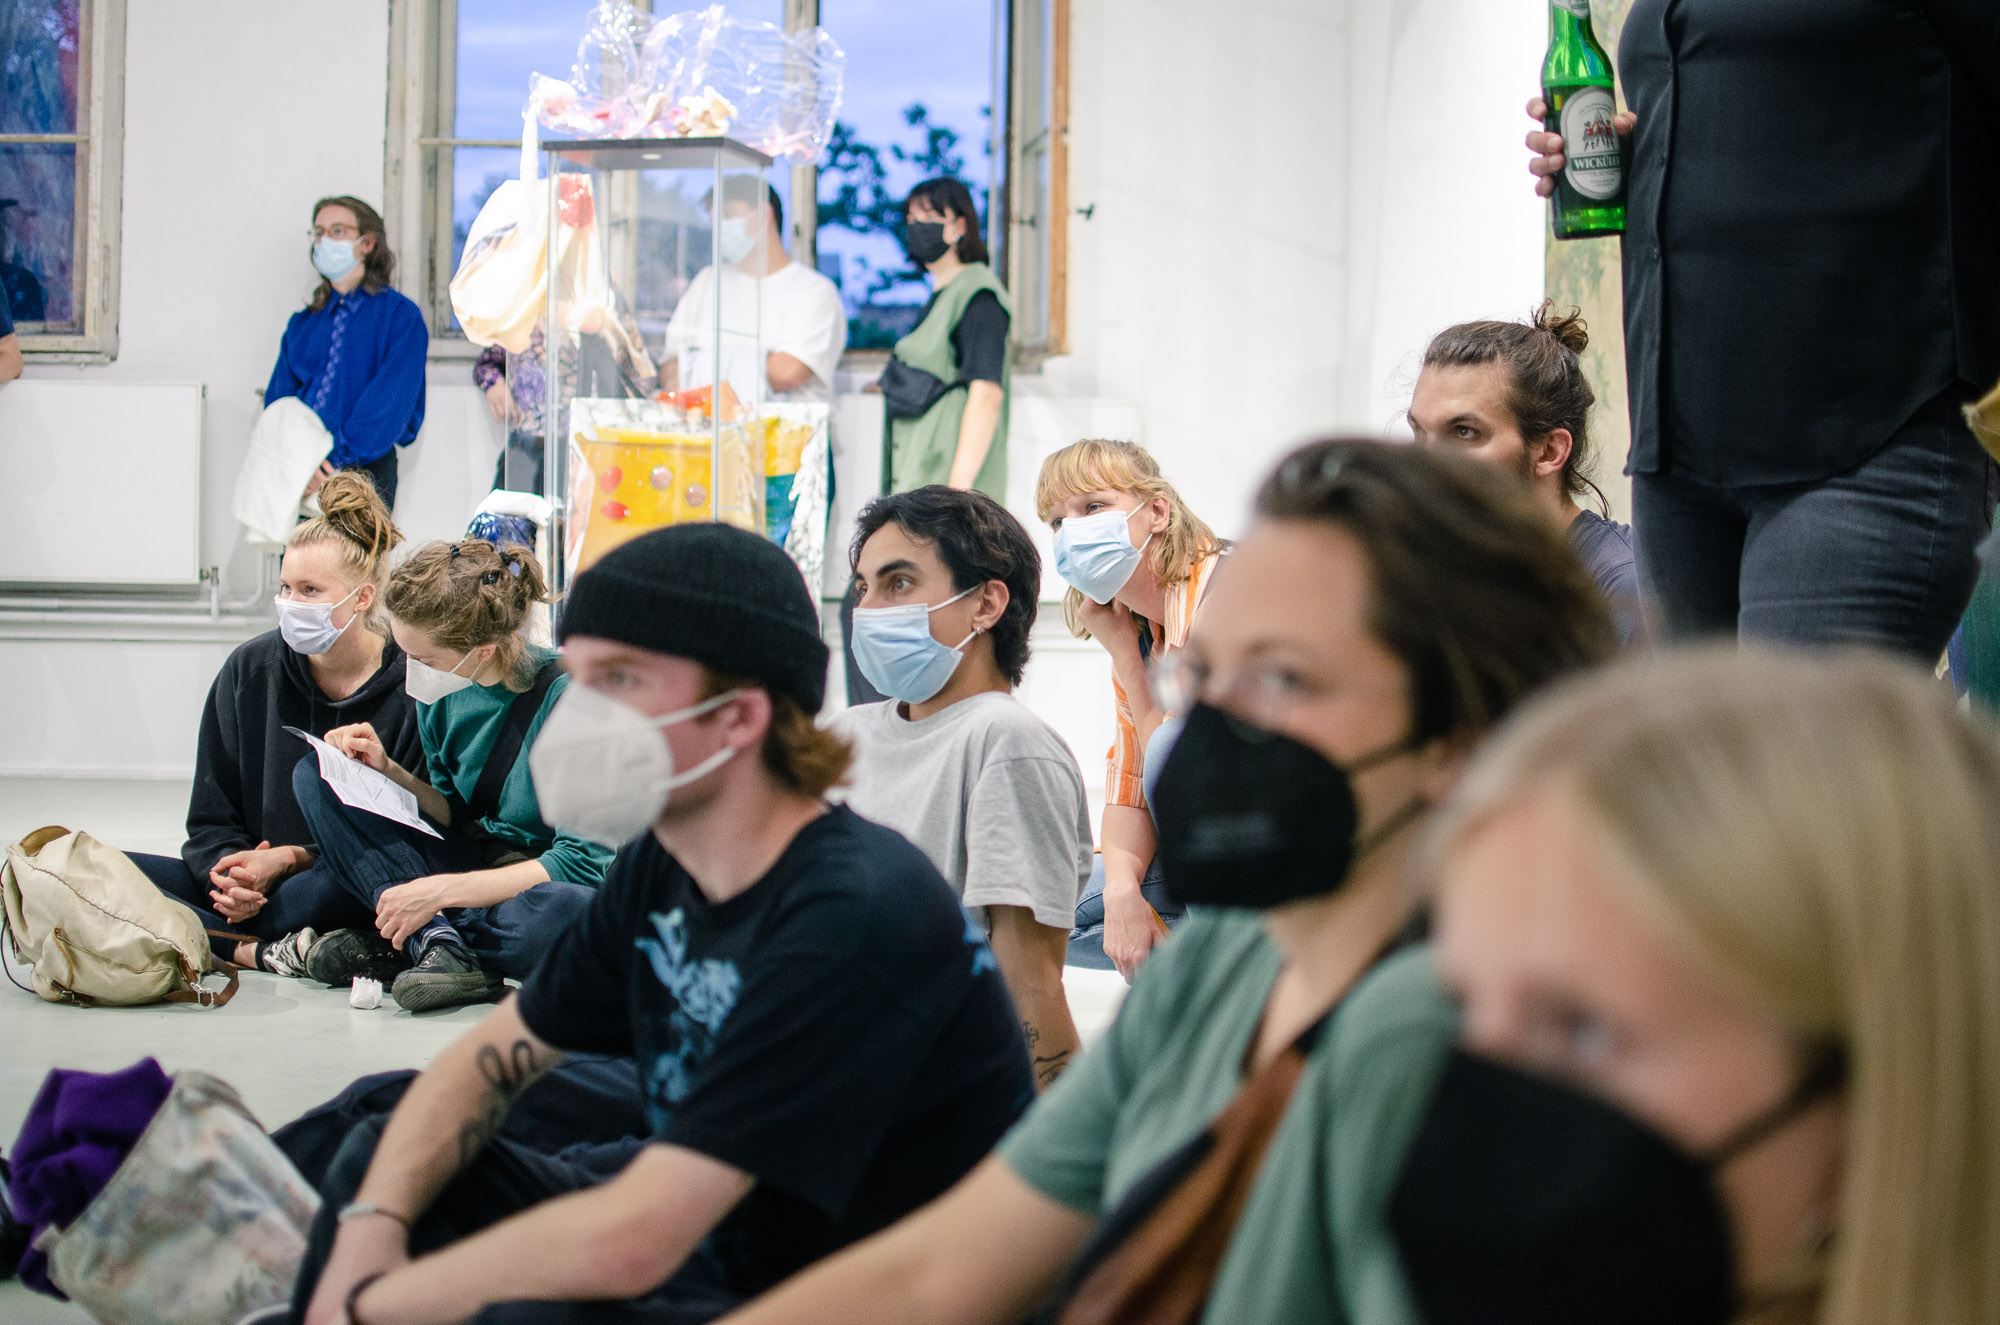 PKRD-48-Airy-Democratic-Spirituality-vernissage-PK-at-Alte-Handlesschule-20.08.21-Fanni-Papp-for-PK-9